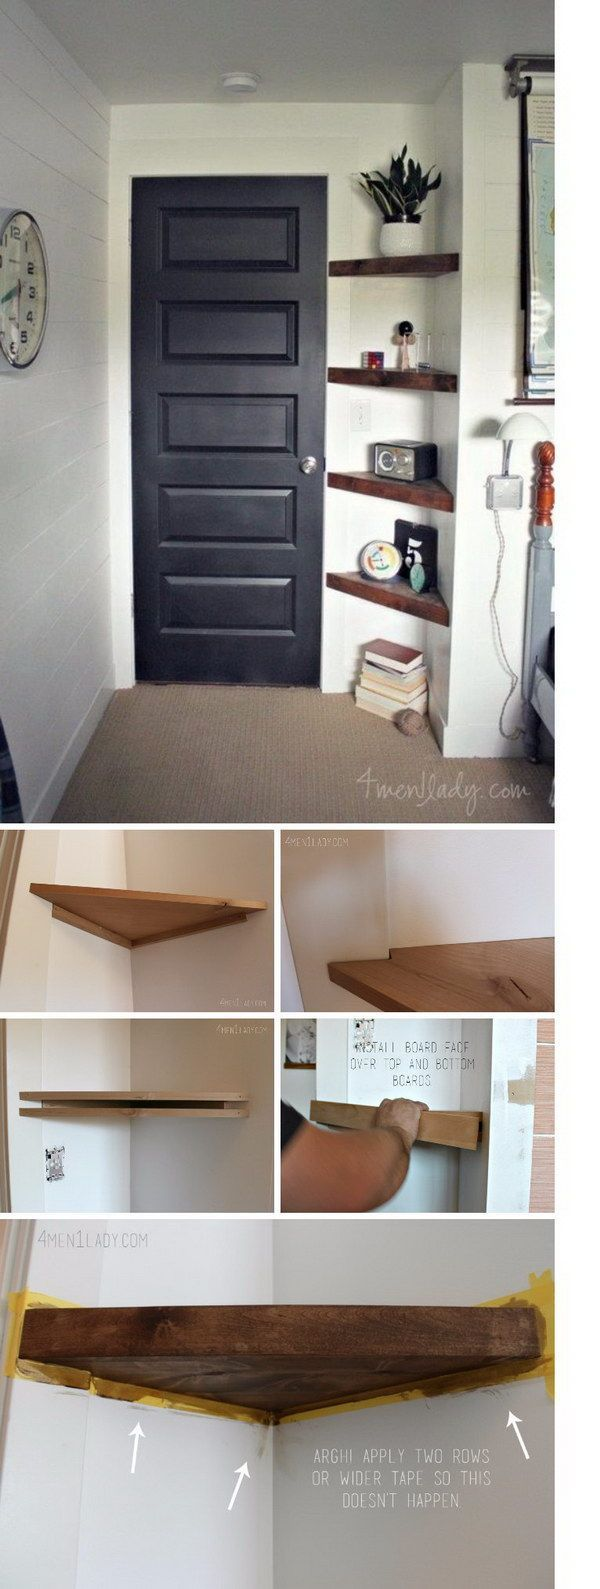 Use Floating Corner Shelves to Create More Storage in an Awkward Small Corner Such as the one behind front door and front closet